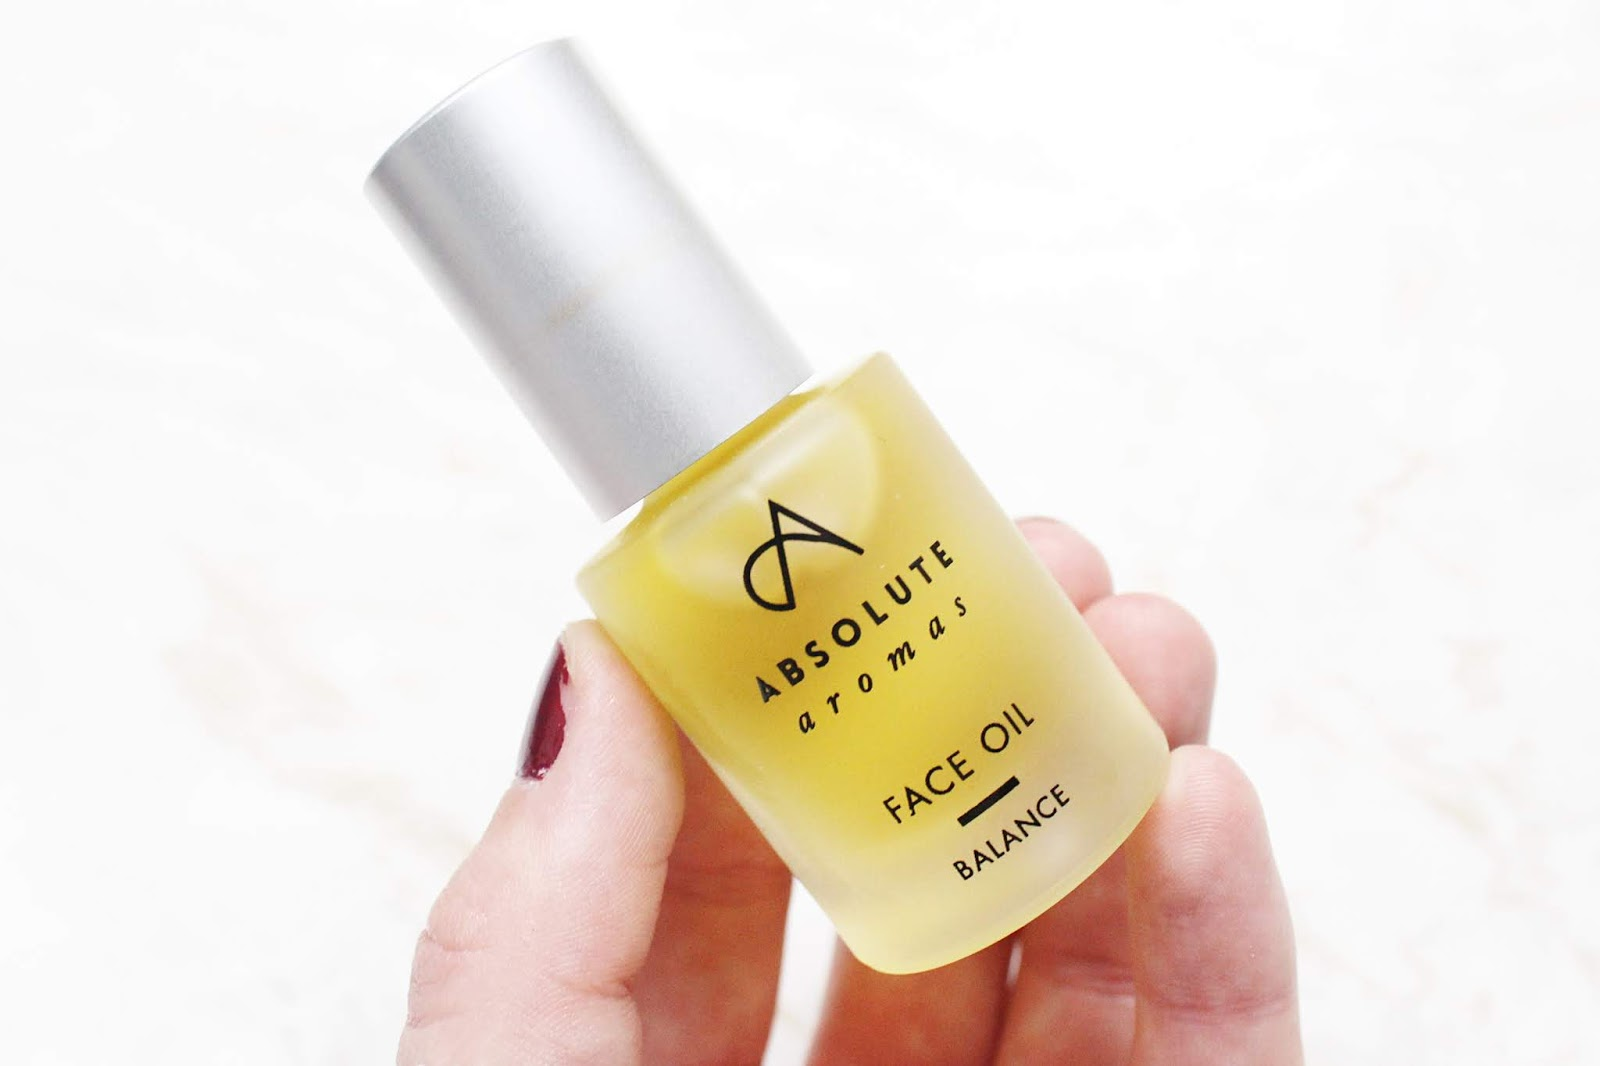 Absolute Aromas Balance Face Oil Review